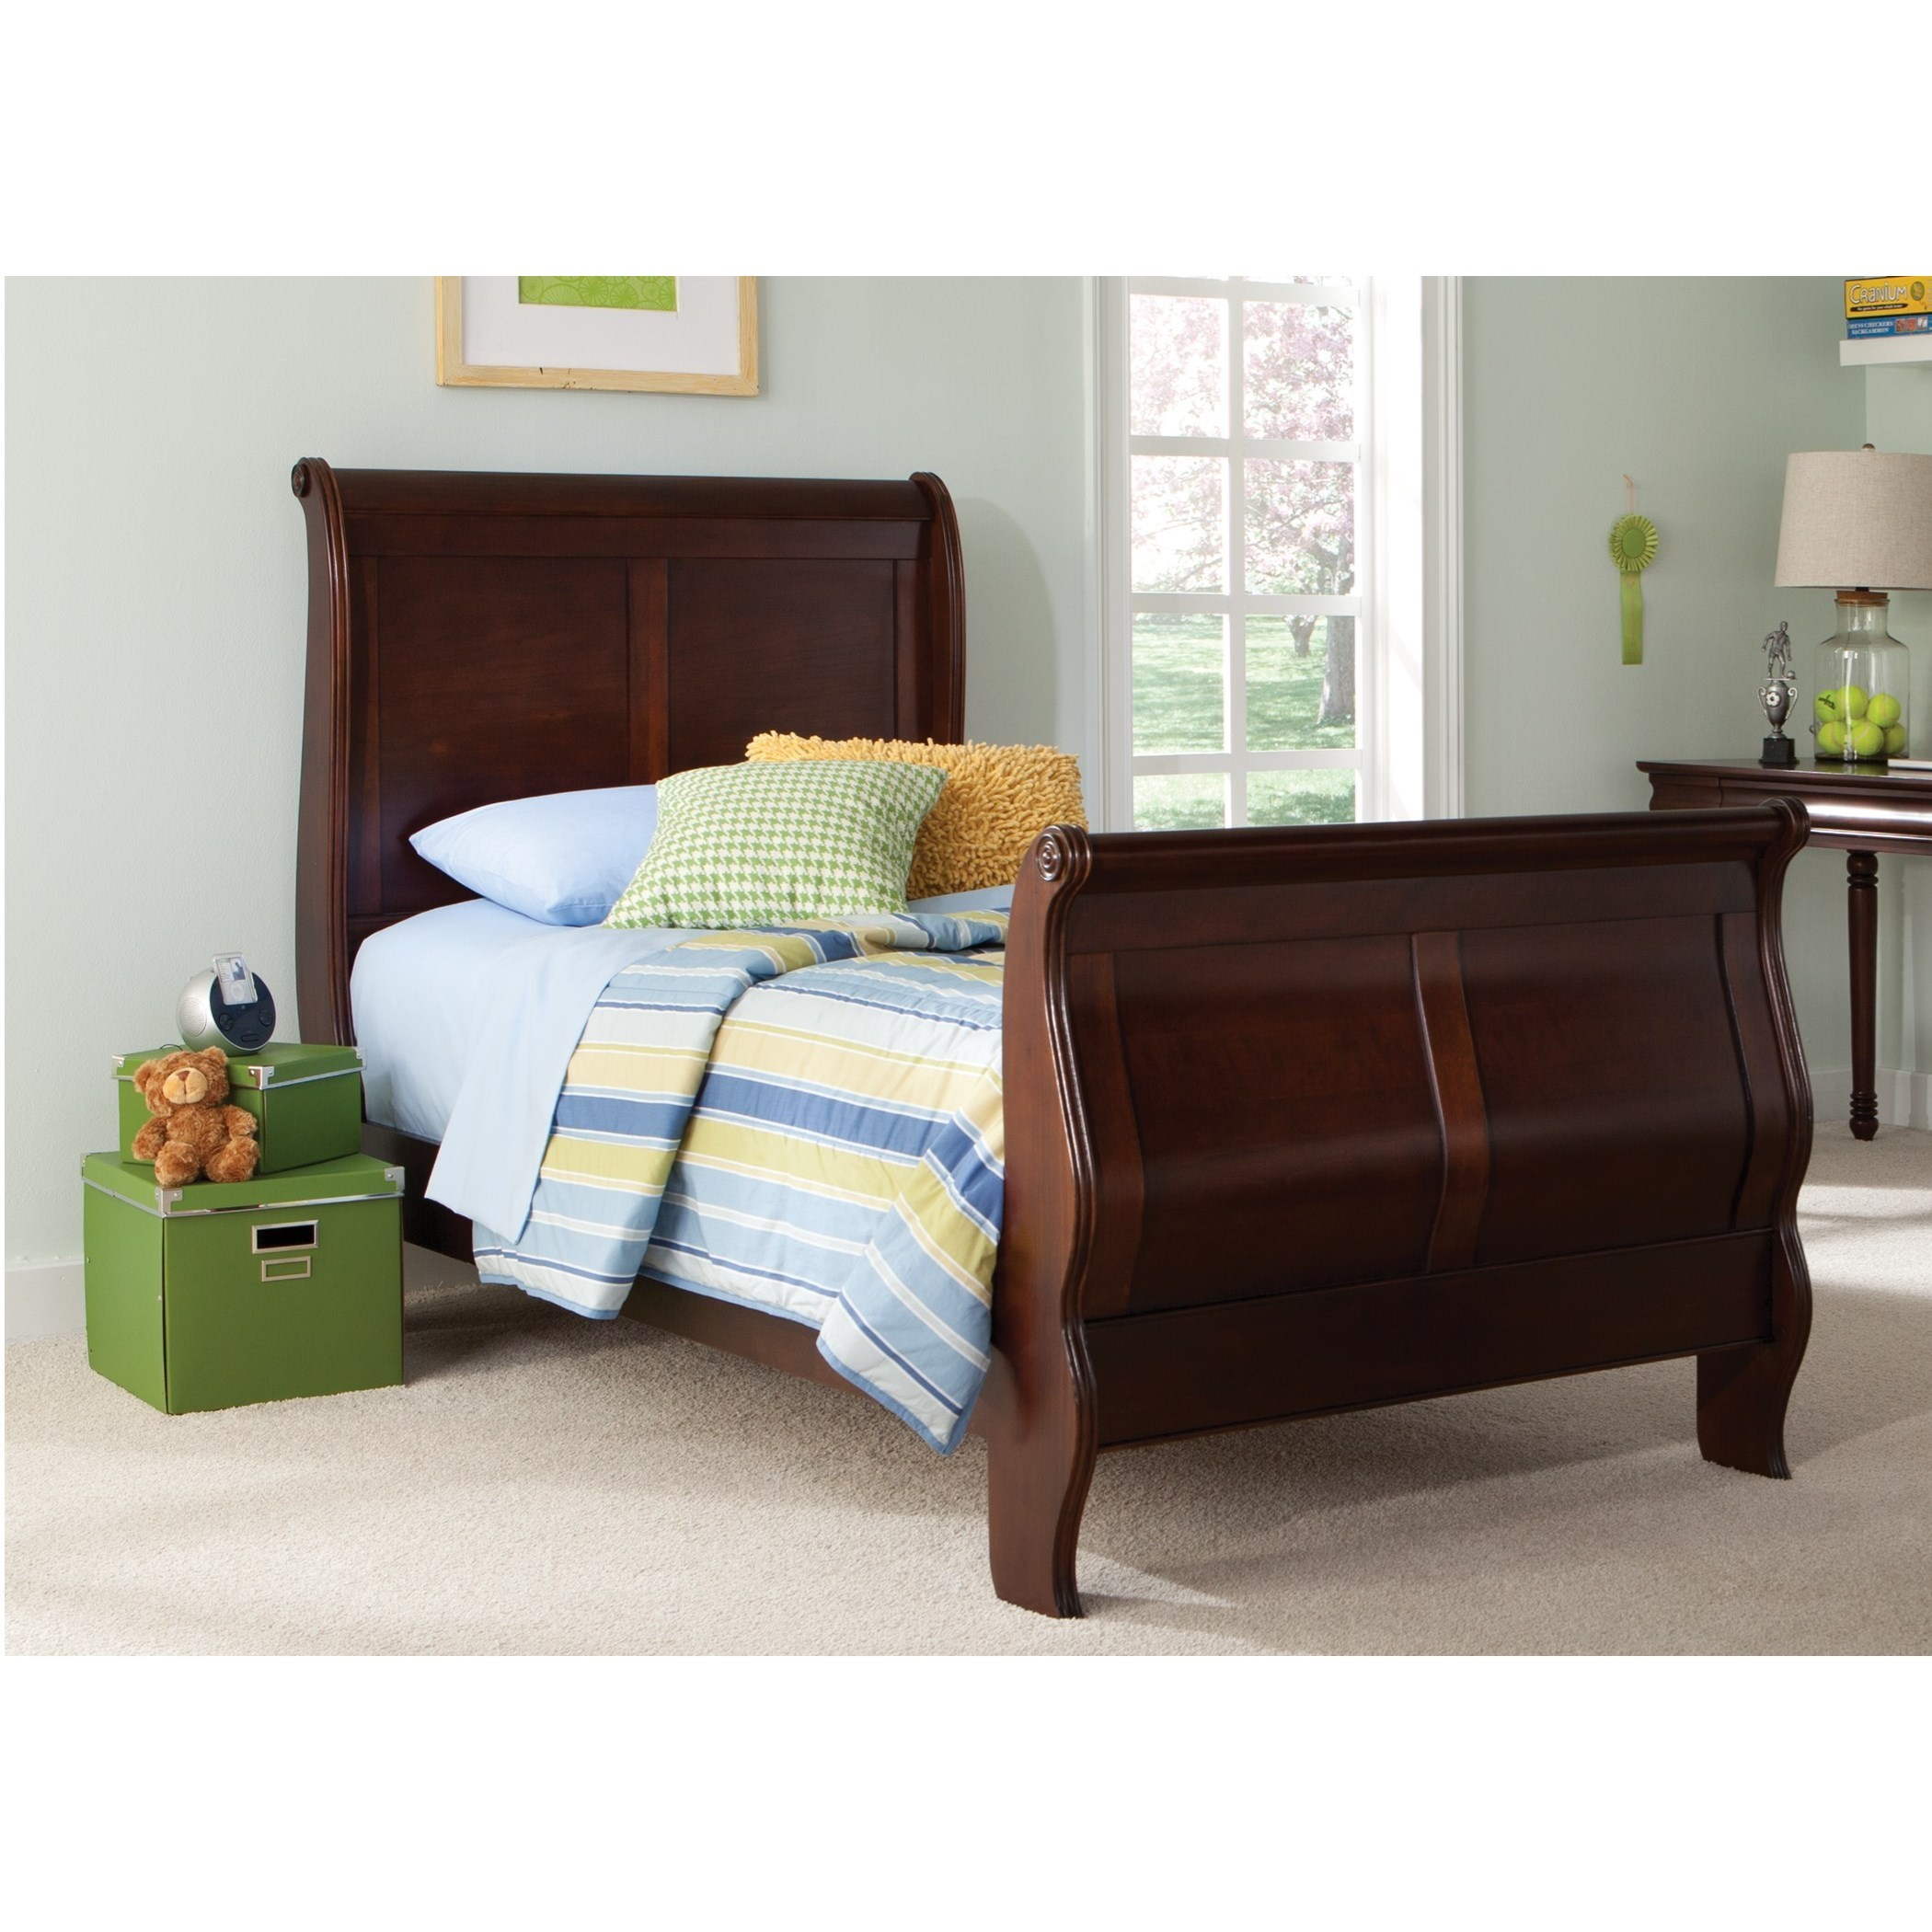 Carriage Court Twin Sleigh Bed by Libby at Walker's Furniture